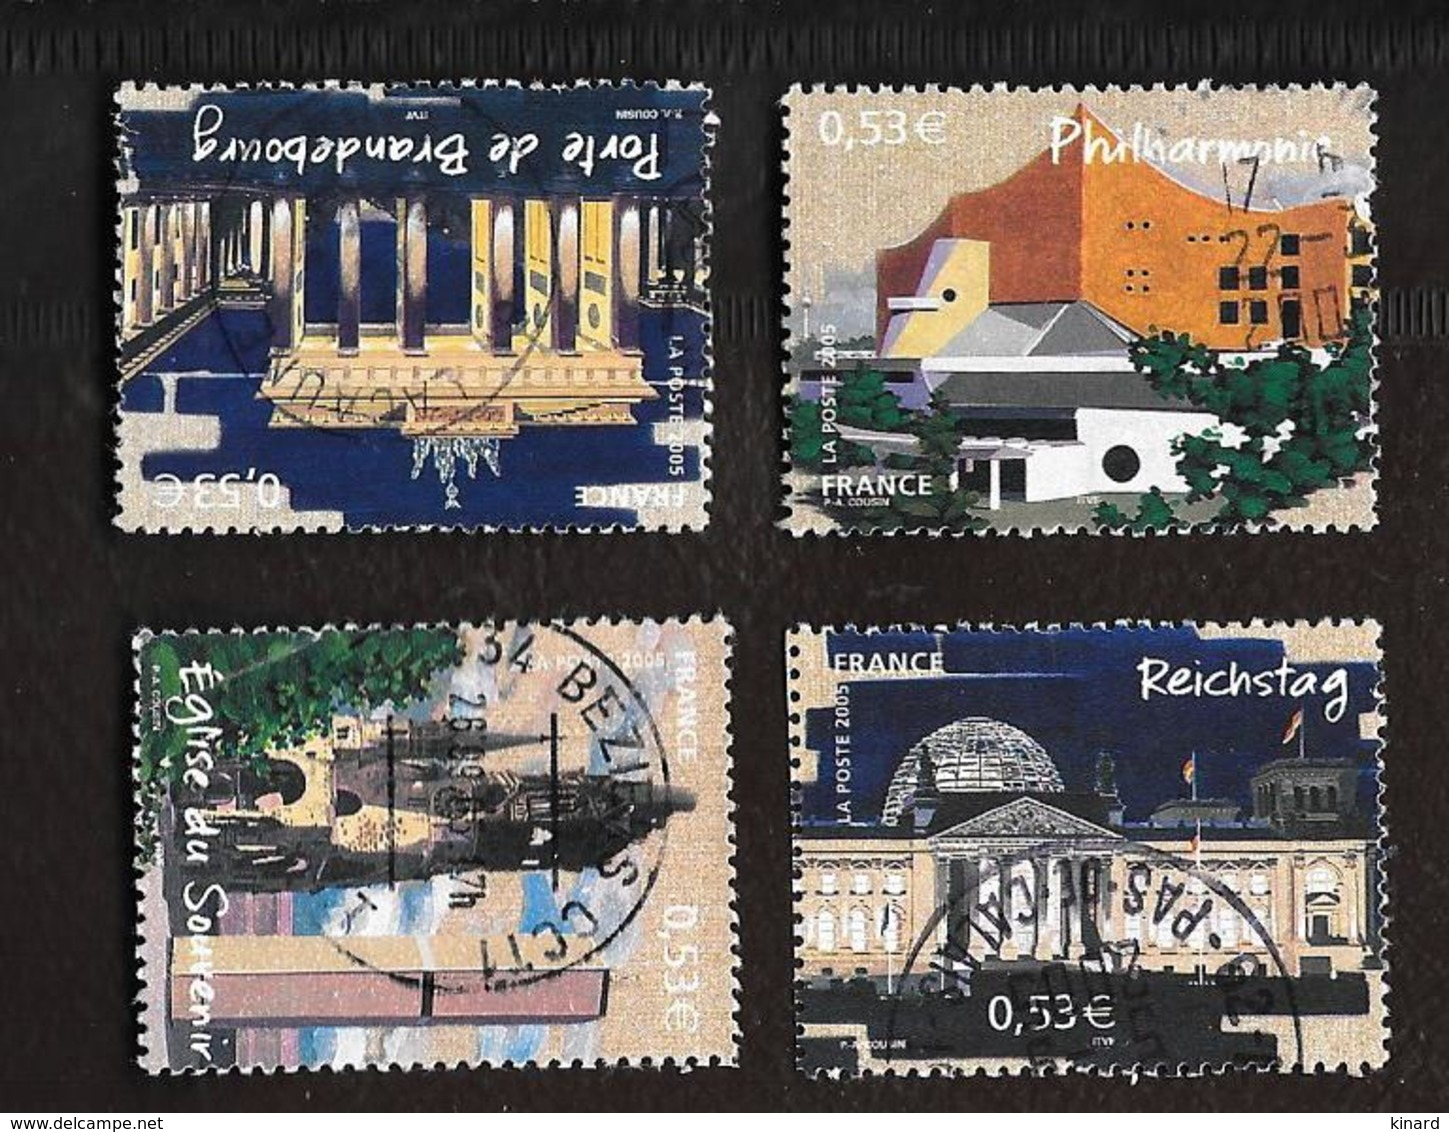 TIMBRES .CAPITALE EUROPEENNE.BERLIN N°3810/3813...2005.. OBLITERATION RONDE..TBE..SCAN - France